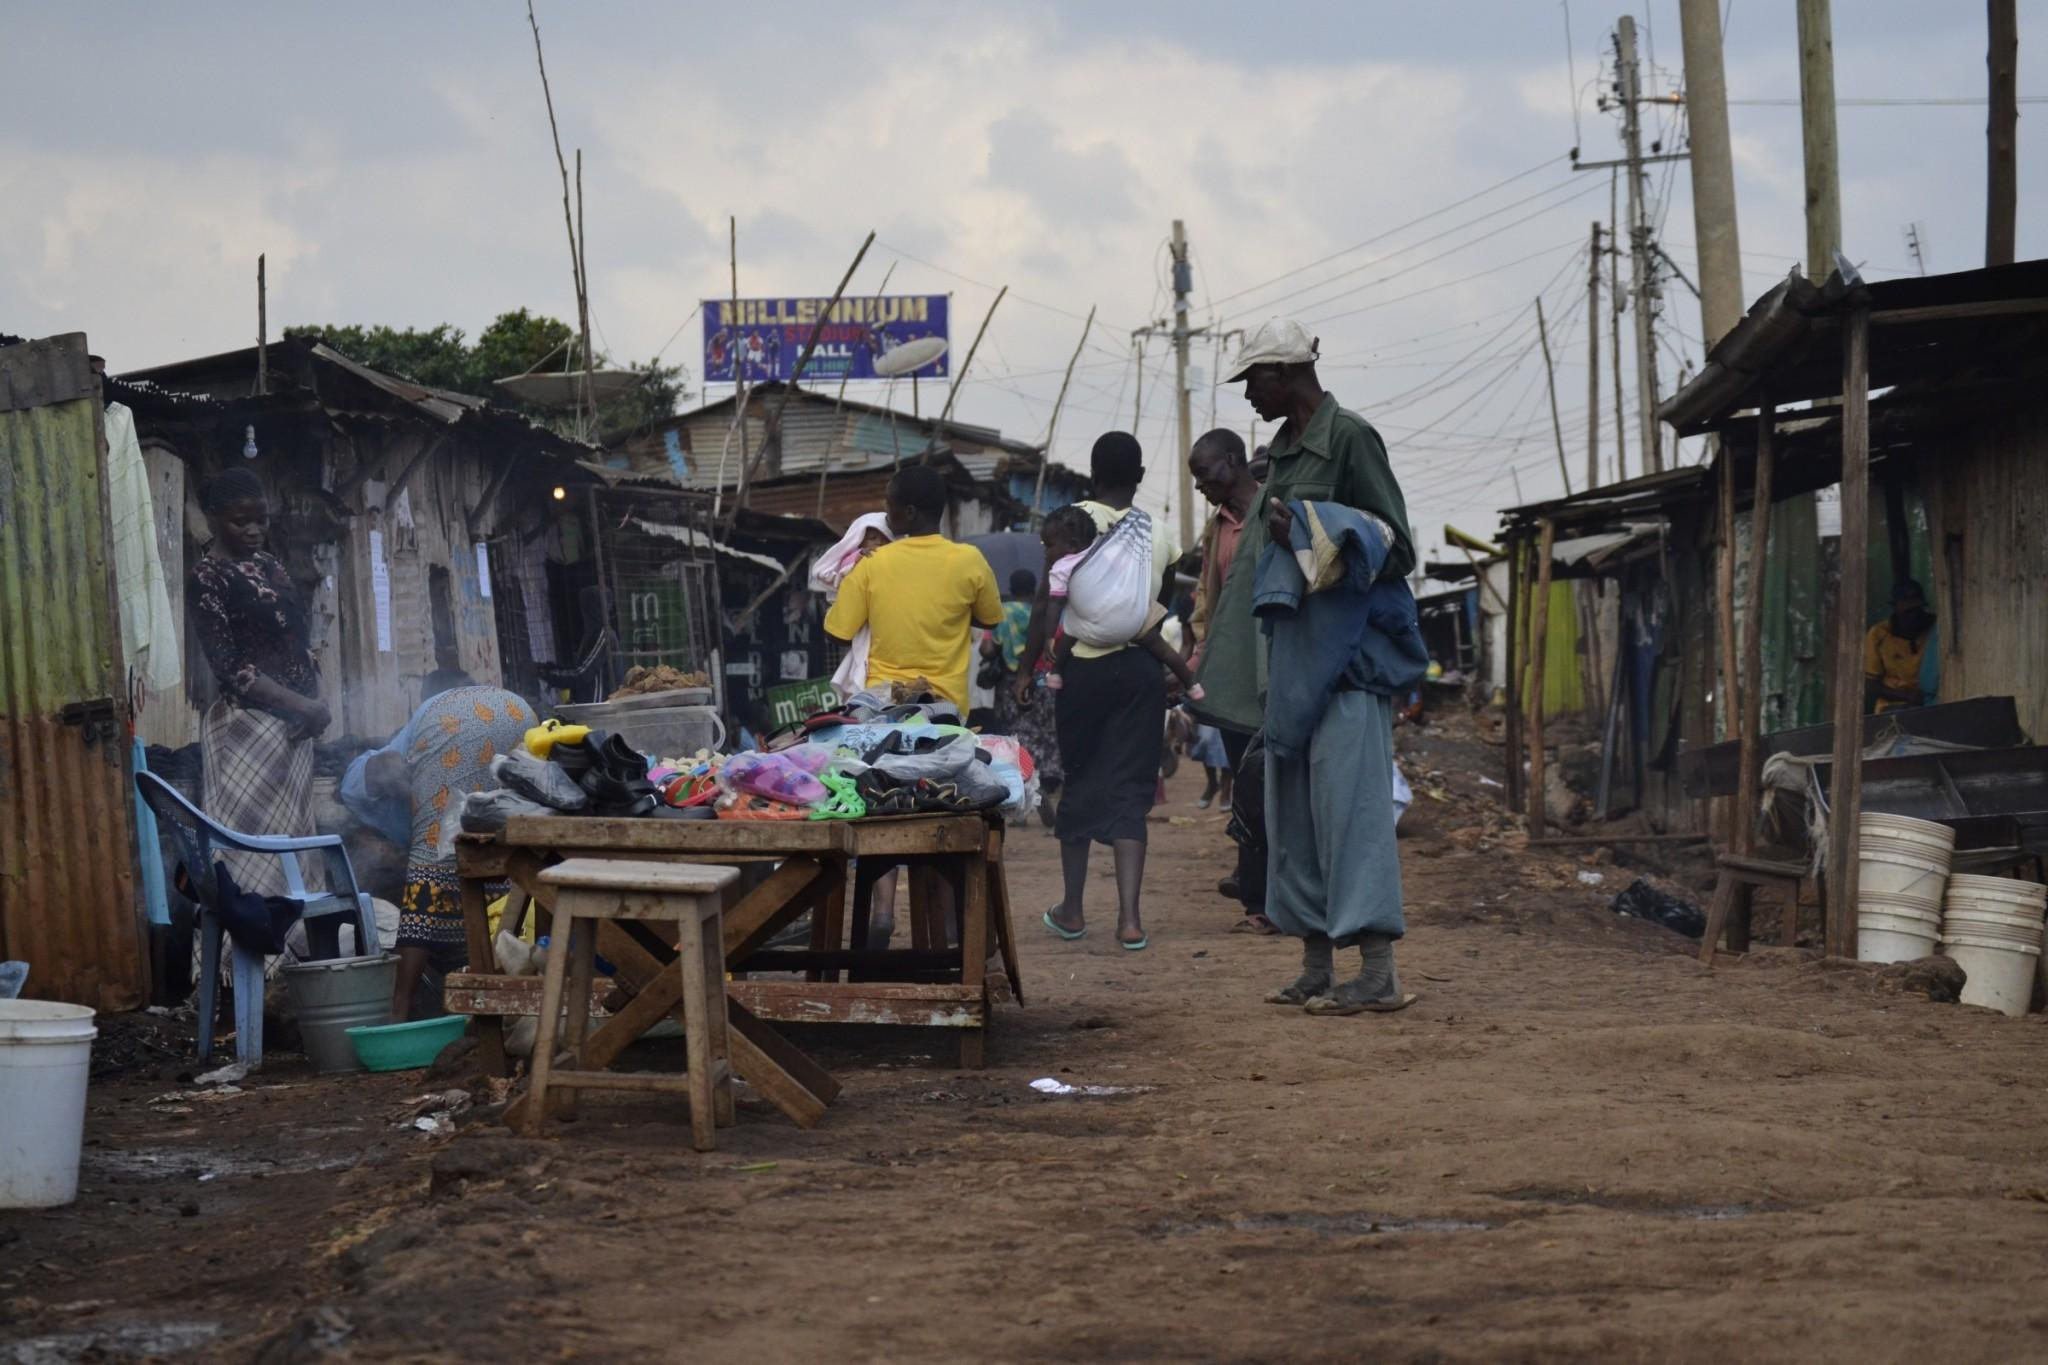 kibera stories from nairobi slum kenya